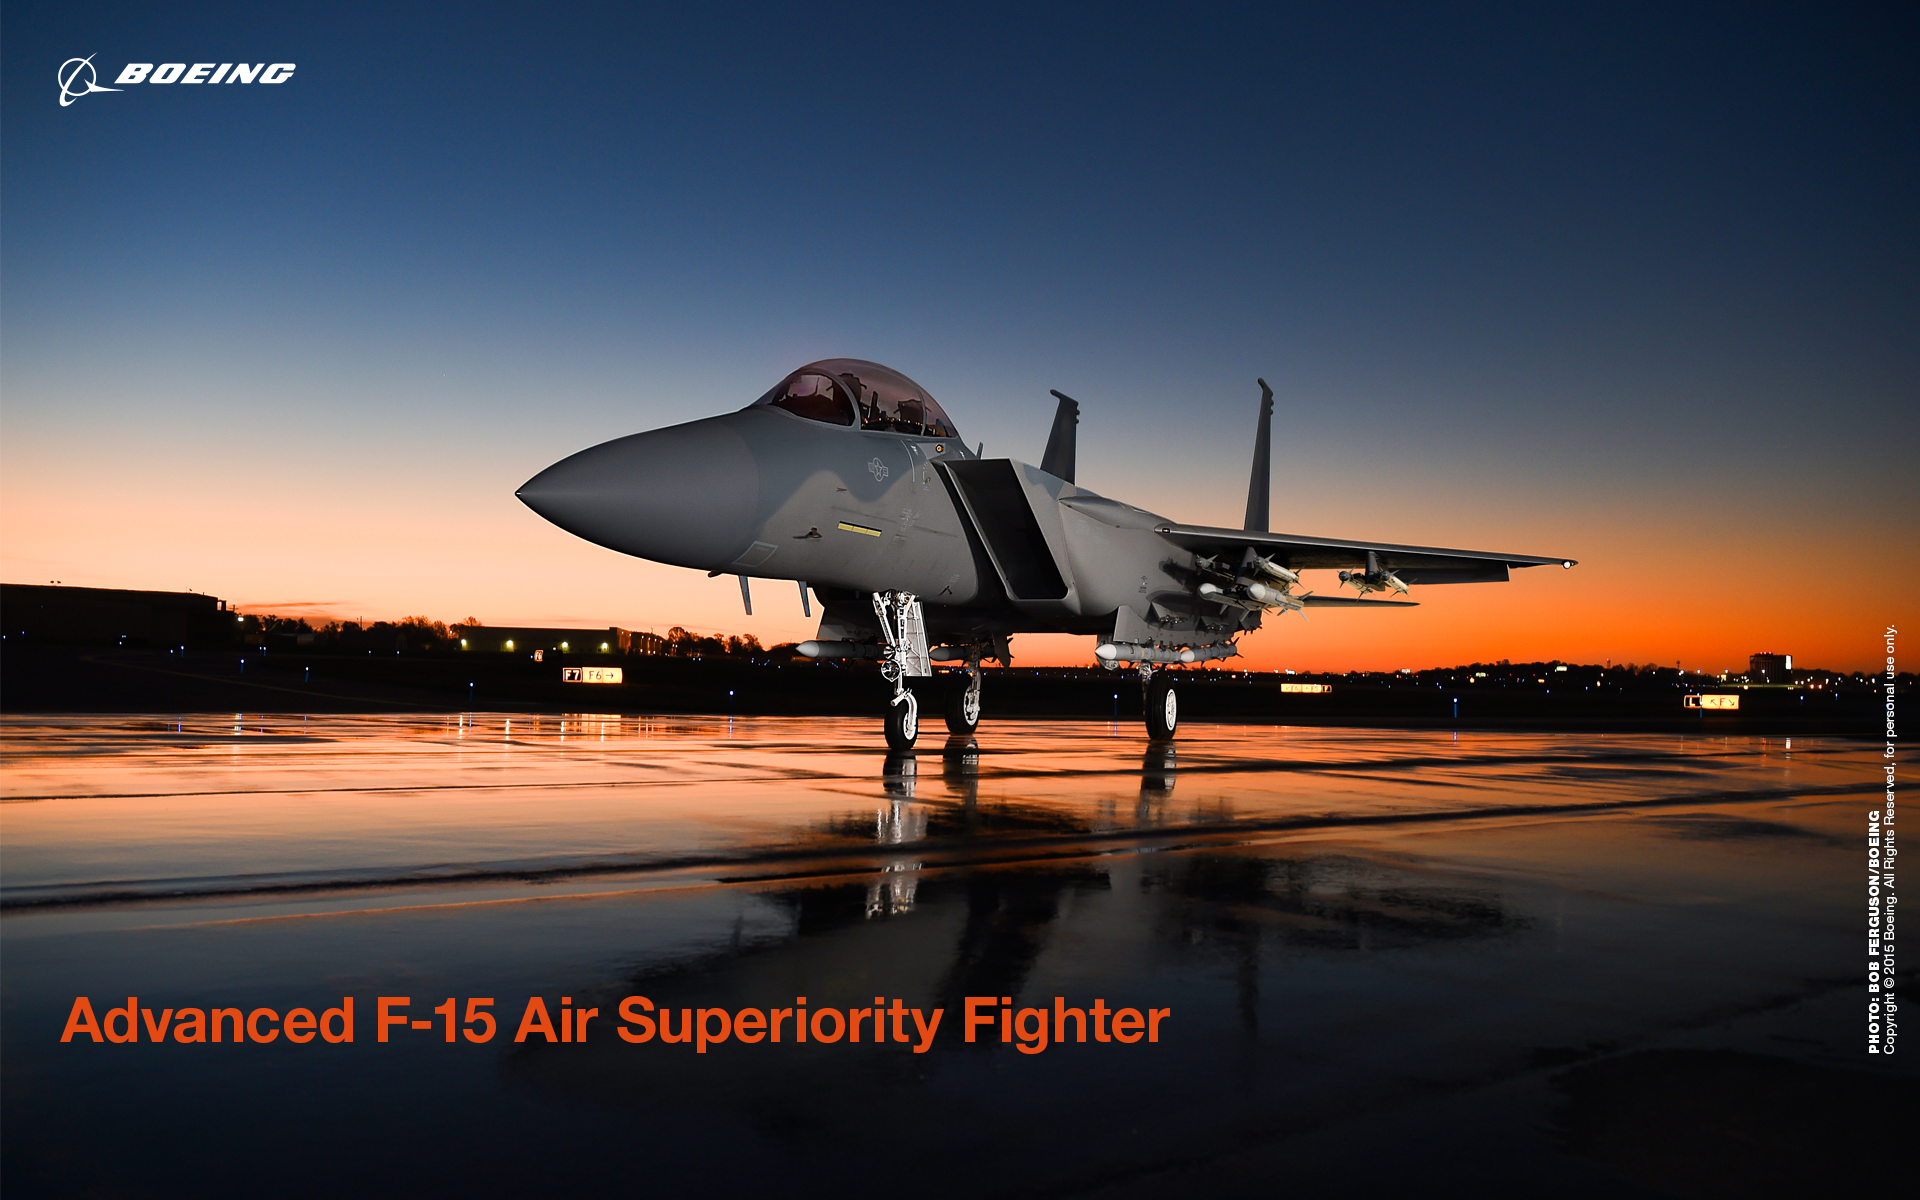 http://www.boeing.com/images/wallpaper_downloads/AdvancedF-15AirSuperiorityFighter_1920x1200.jpg